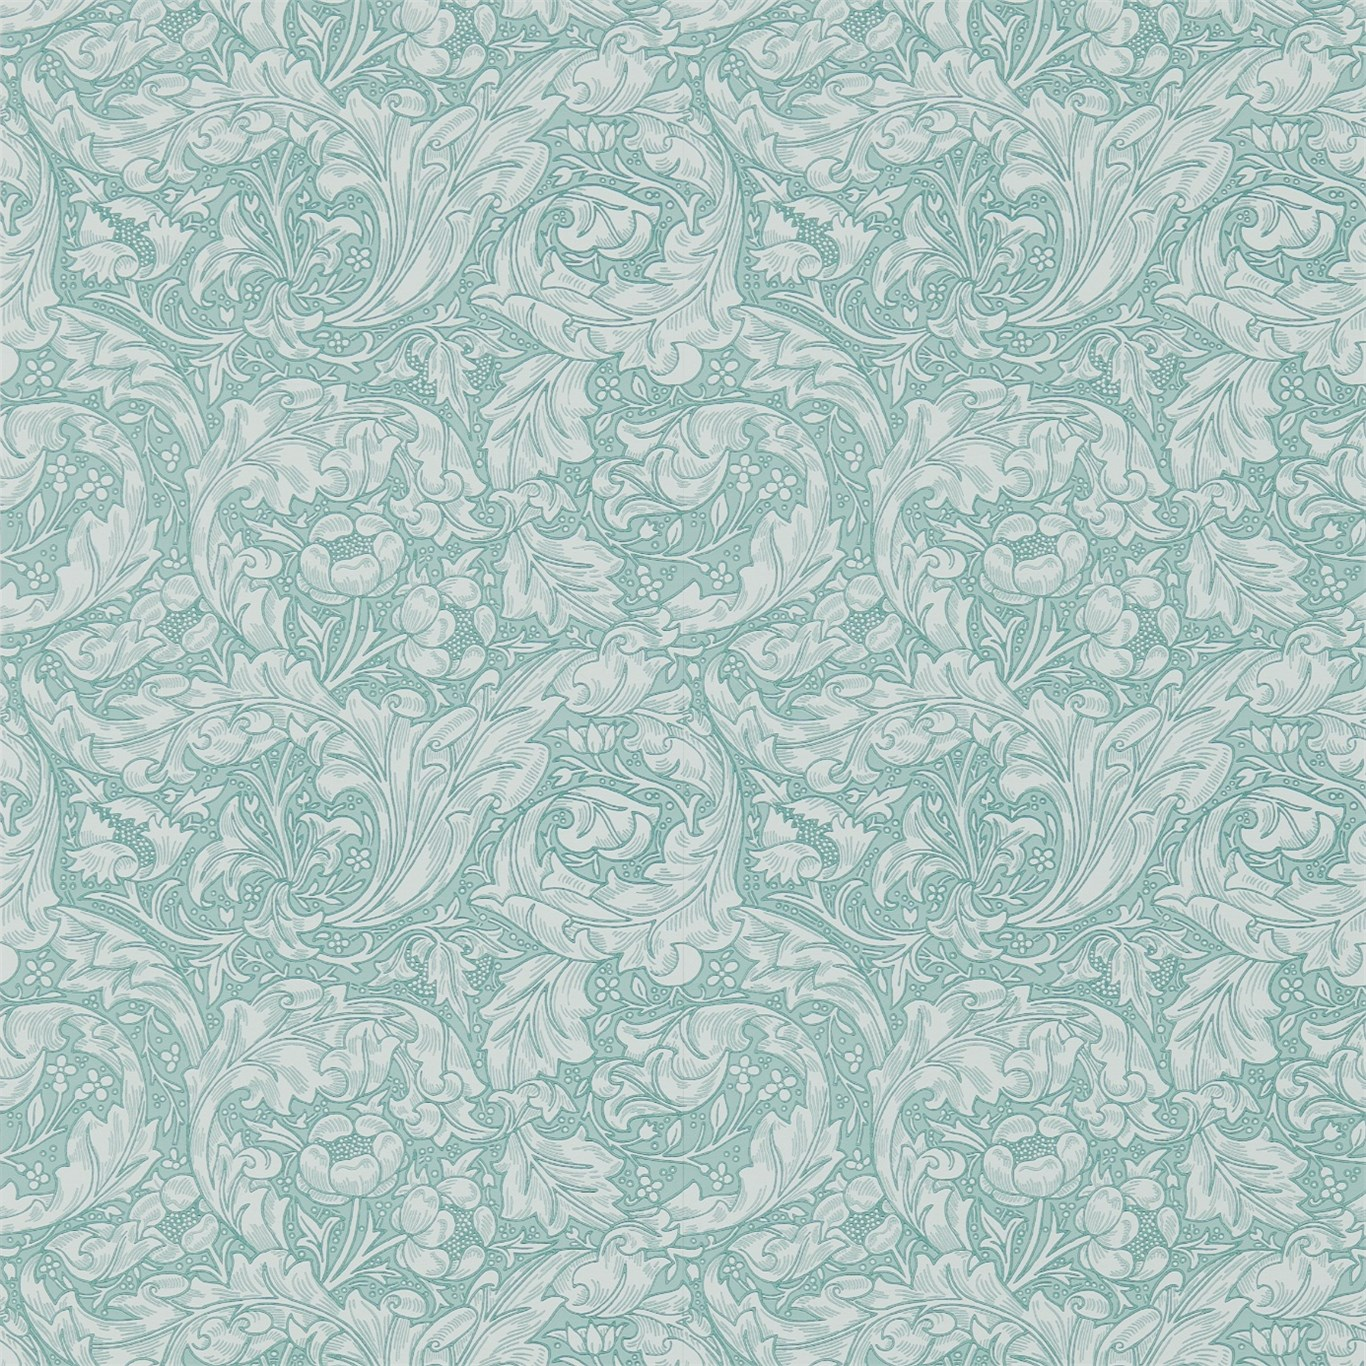 Tapet William Morris Bachelors Button 214732